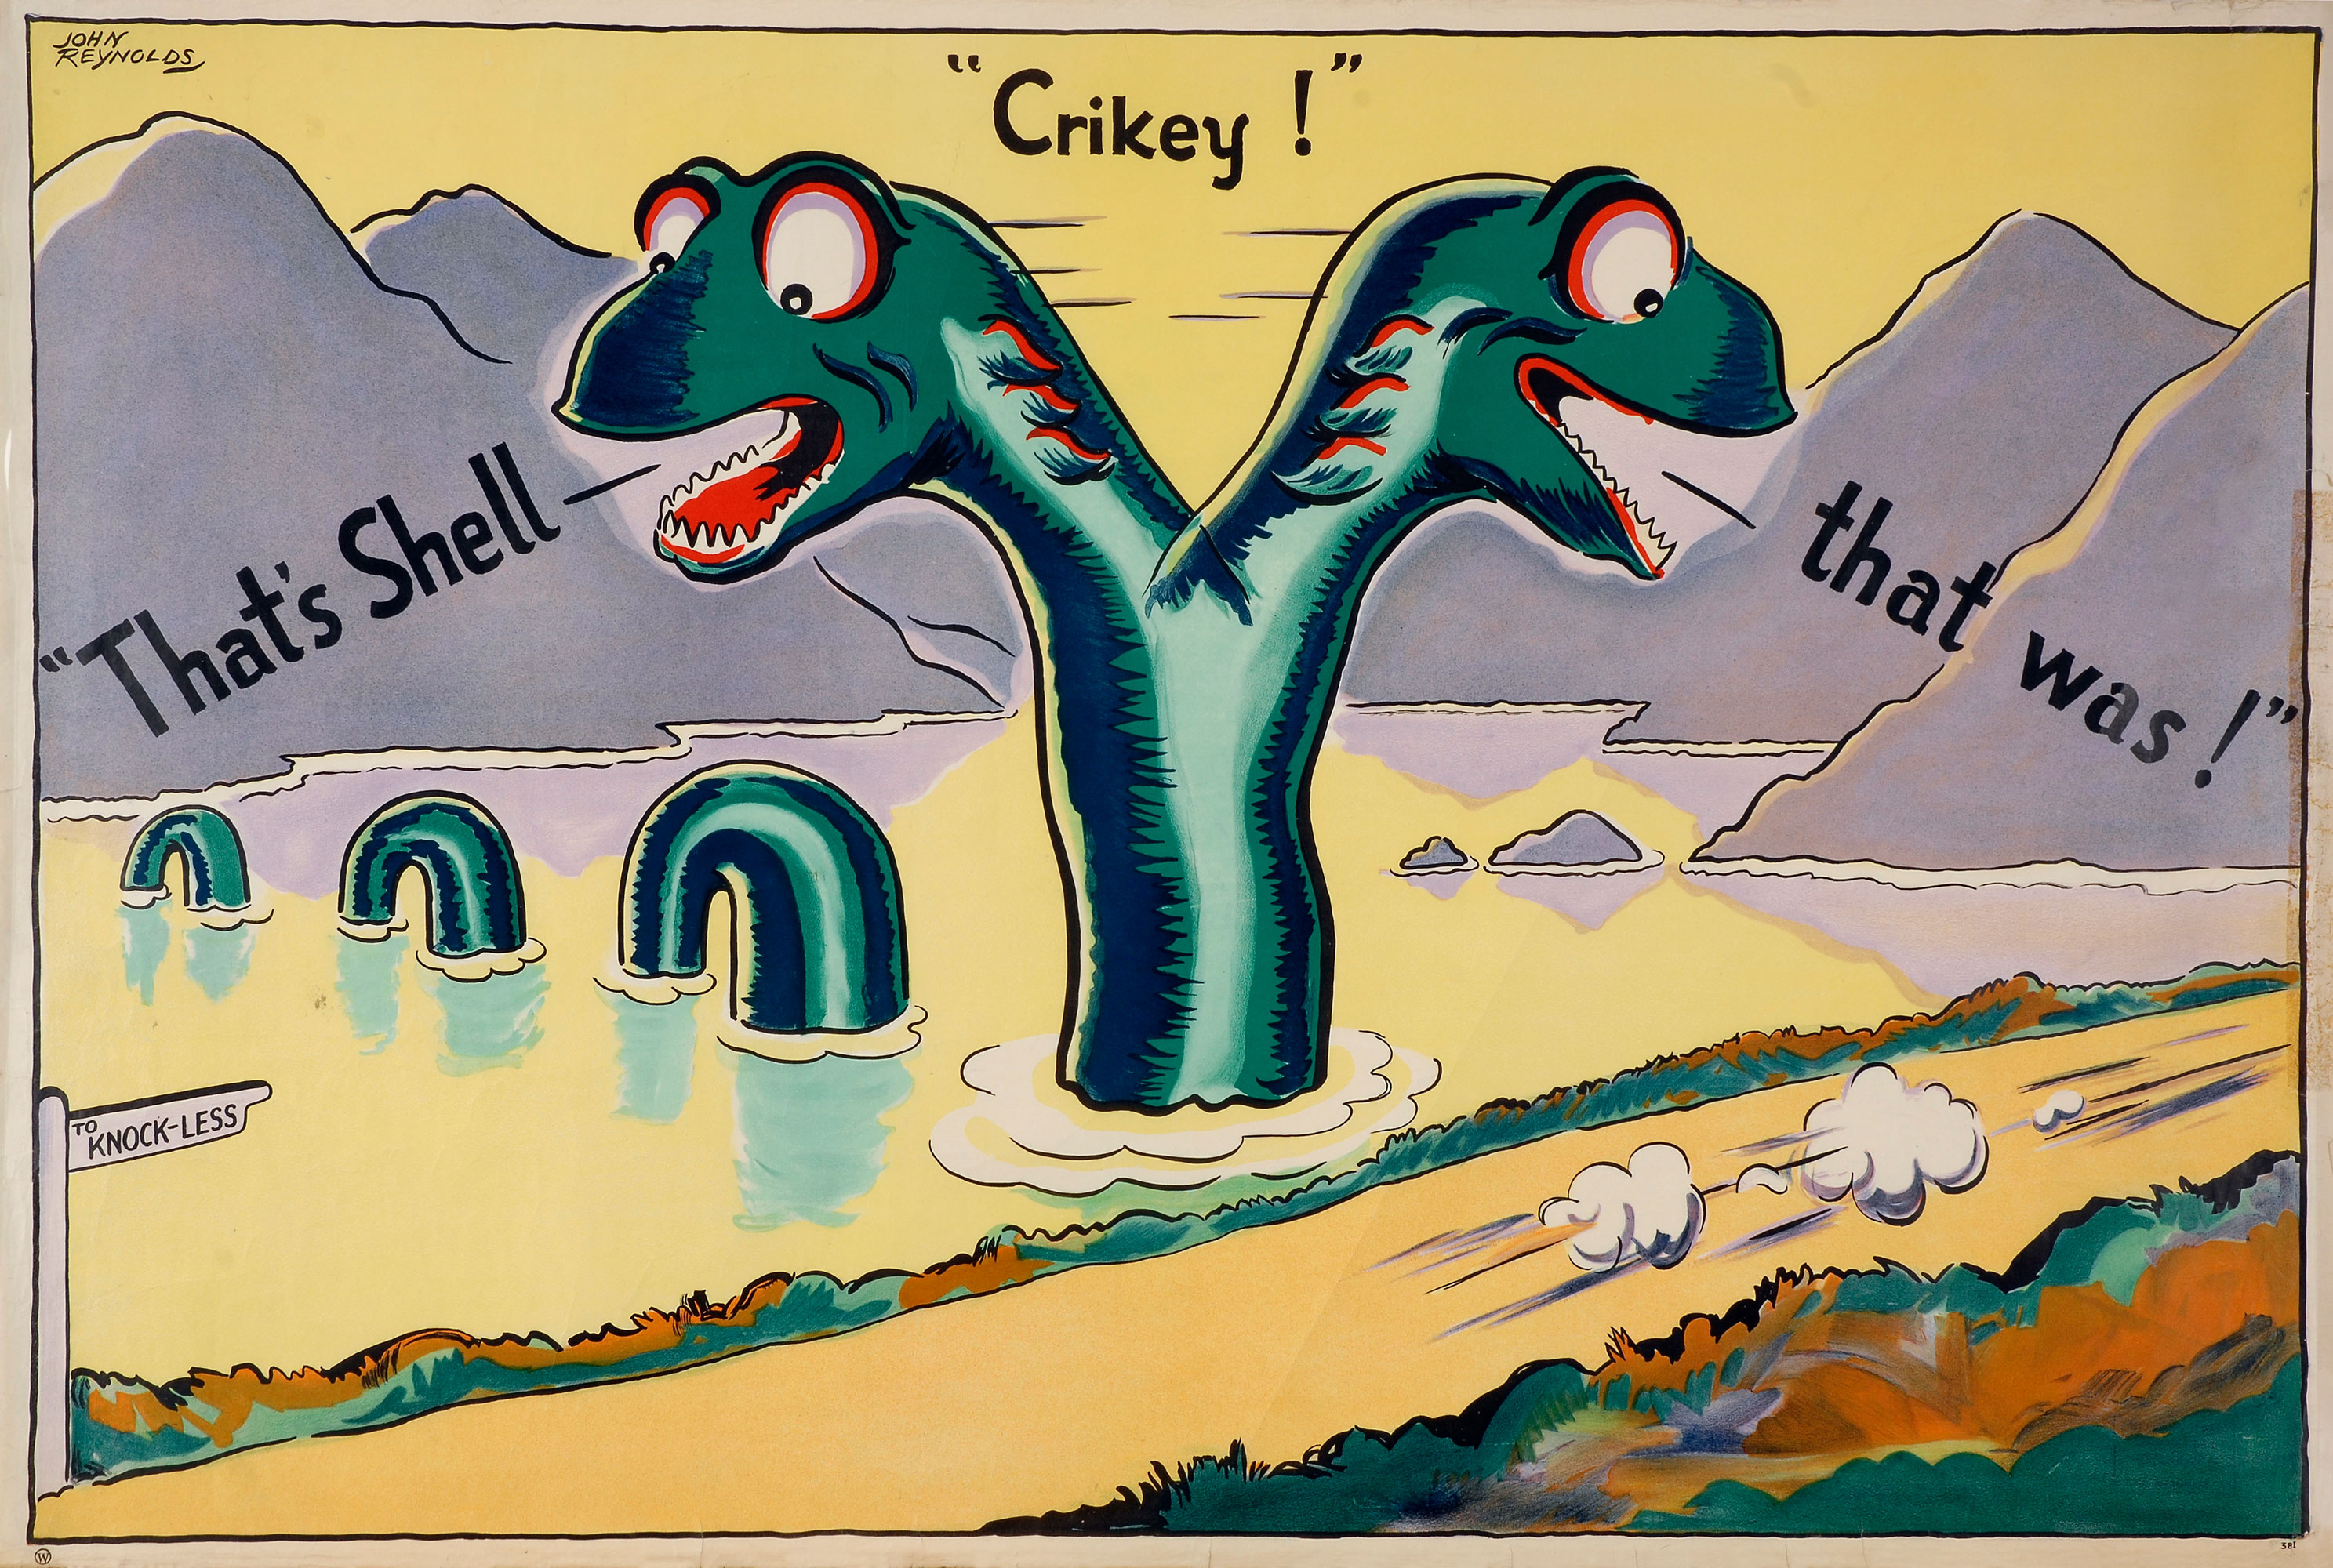 Shell poster number 381, Crikey That's Shell that was! Loch Ness Monster by John Reynolds. Cartoon of Loch Ness Monster appearing to be two headed as it watches a car speed by, all that remains are it's exhaust fumes. The sign by the Loch reads 'To Knock Less'.